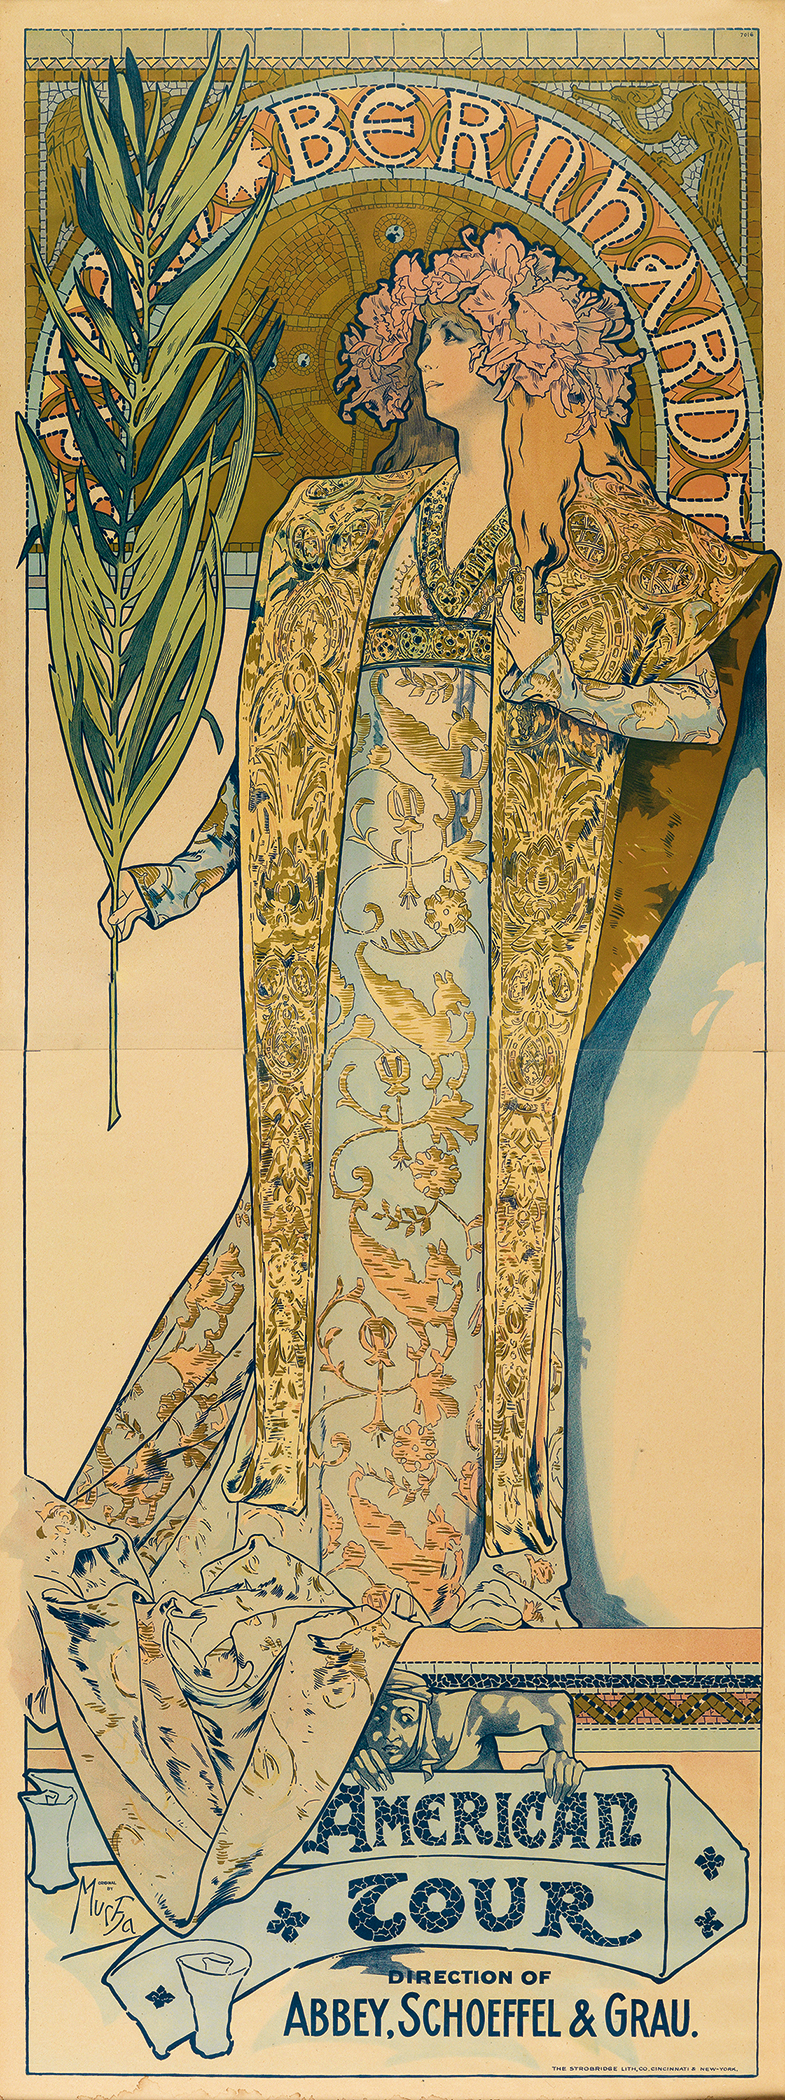 A poster that advertises Sarah Bernhardt's 1896 American Tour. Alphonse Mucha designed it.